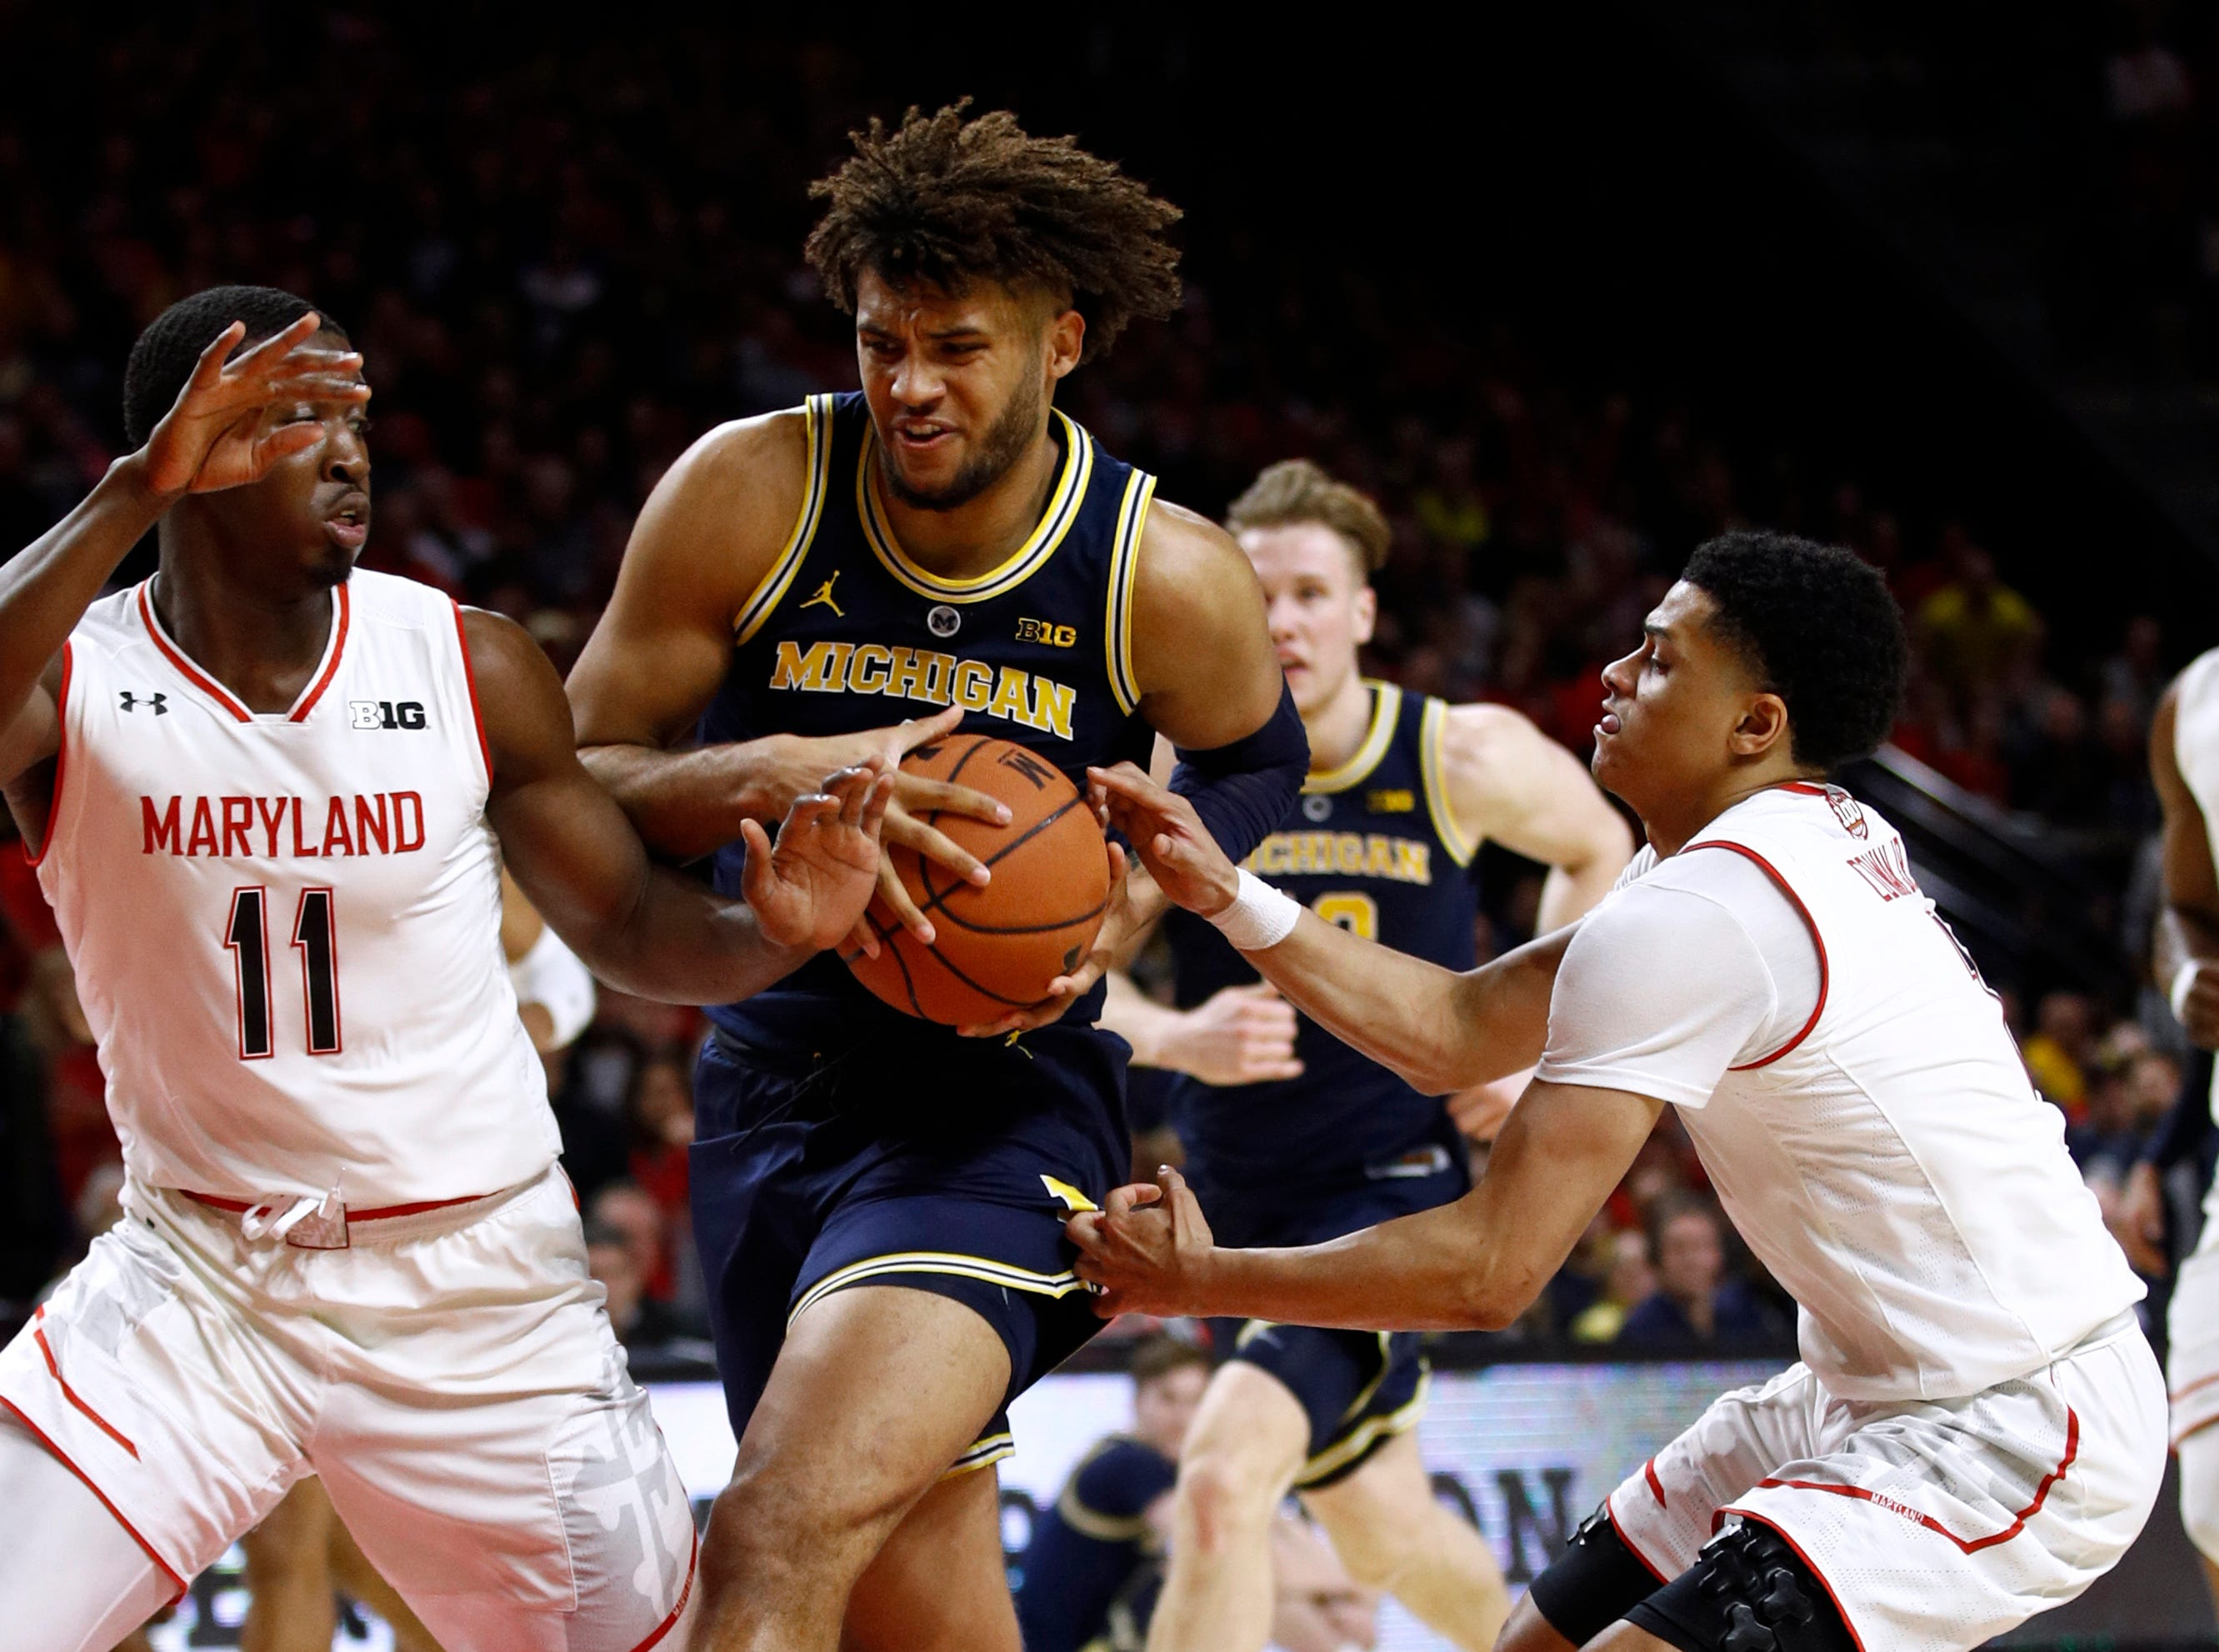 Michigan forward Isaiah Livers, center, drives between Maryland guards Darryl Morsell, left, and Anthony Cowan Jr. in the first half.